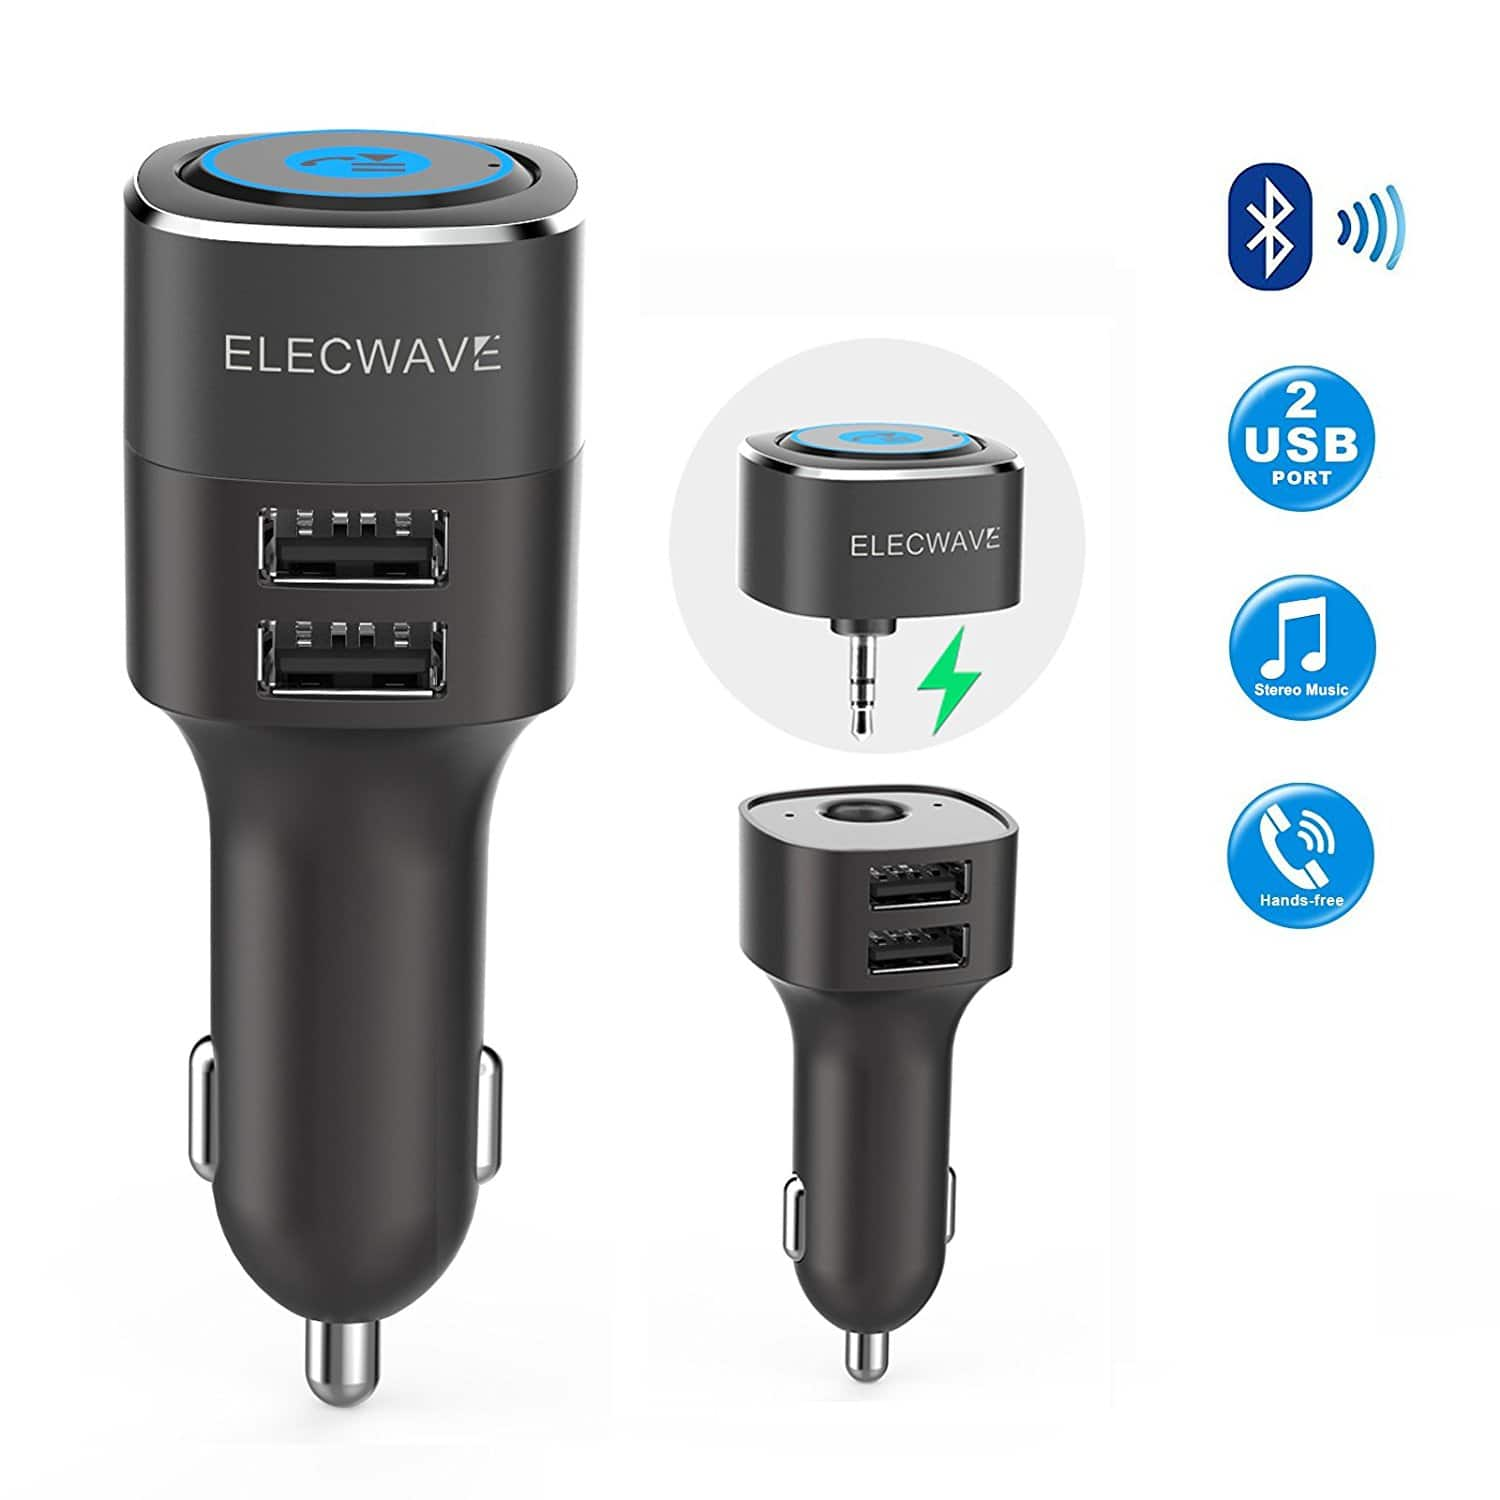 Elecwave Hands-Free Bluetooth Receiver with Dual USB Car Charger $15.99 + Free Shipping